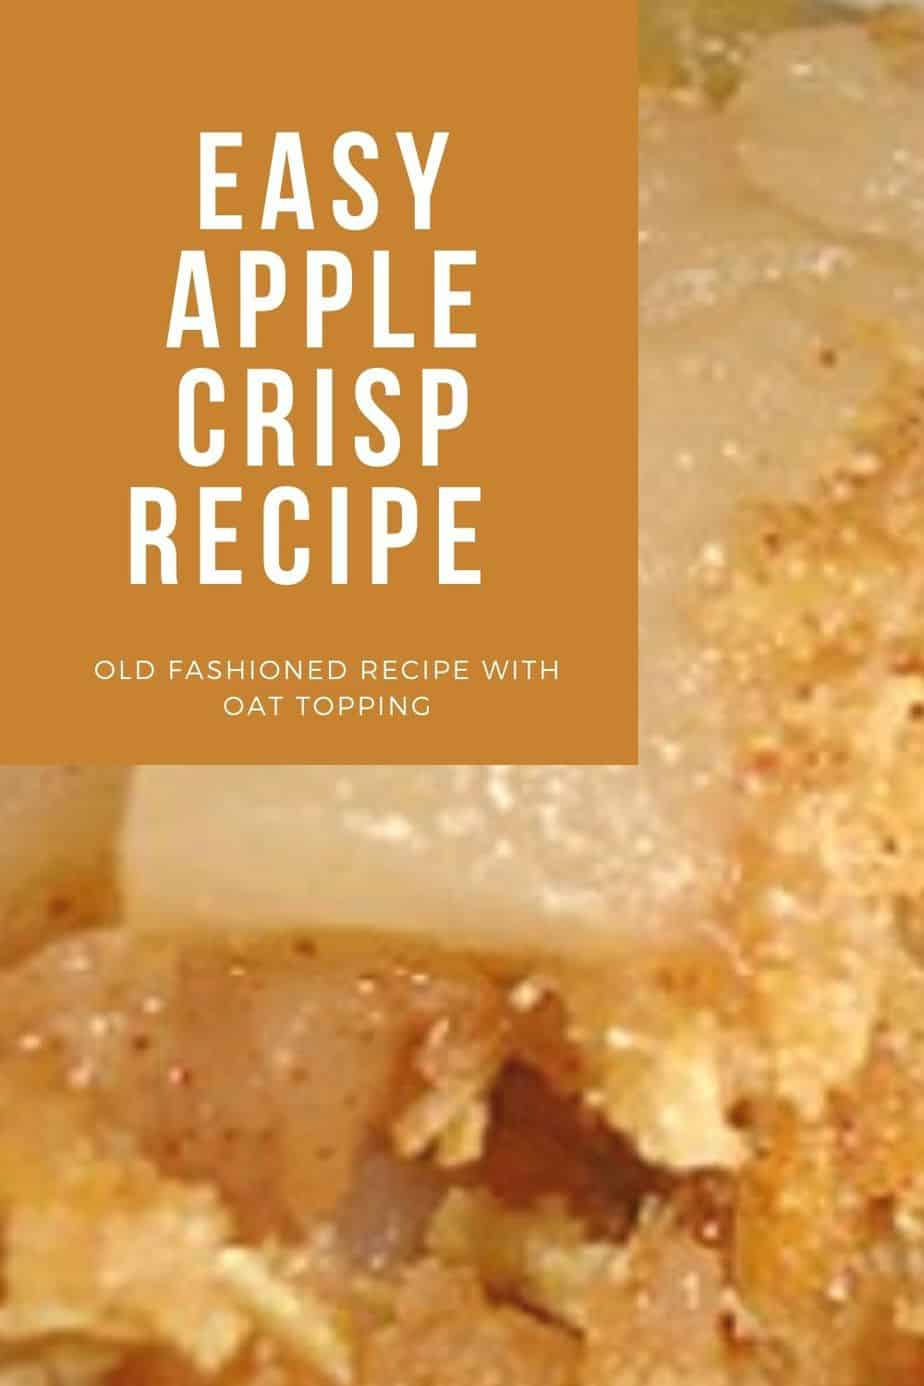 Old Fashioned Easy Apple Crisp Recipe With Oat Topping